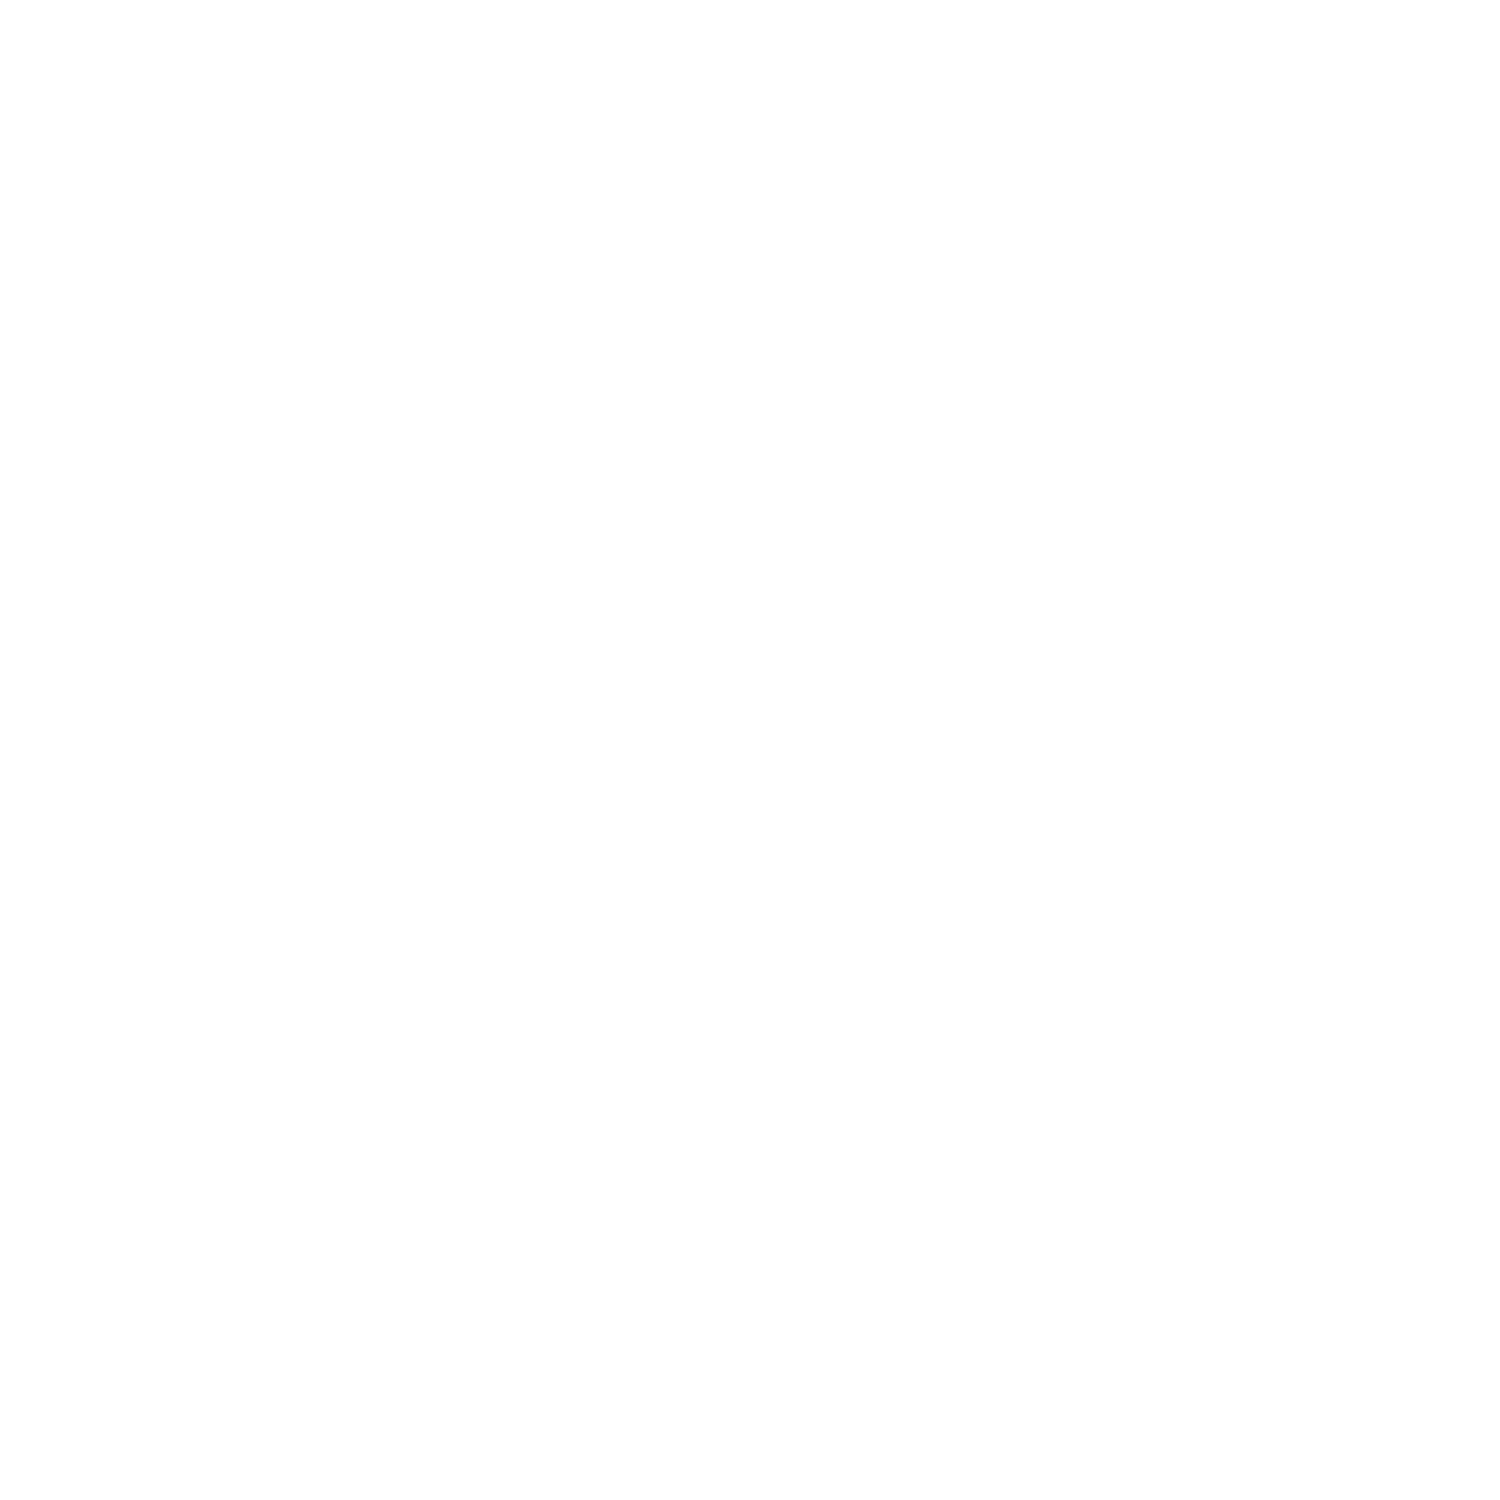 Victoria Fashion Week